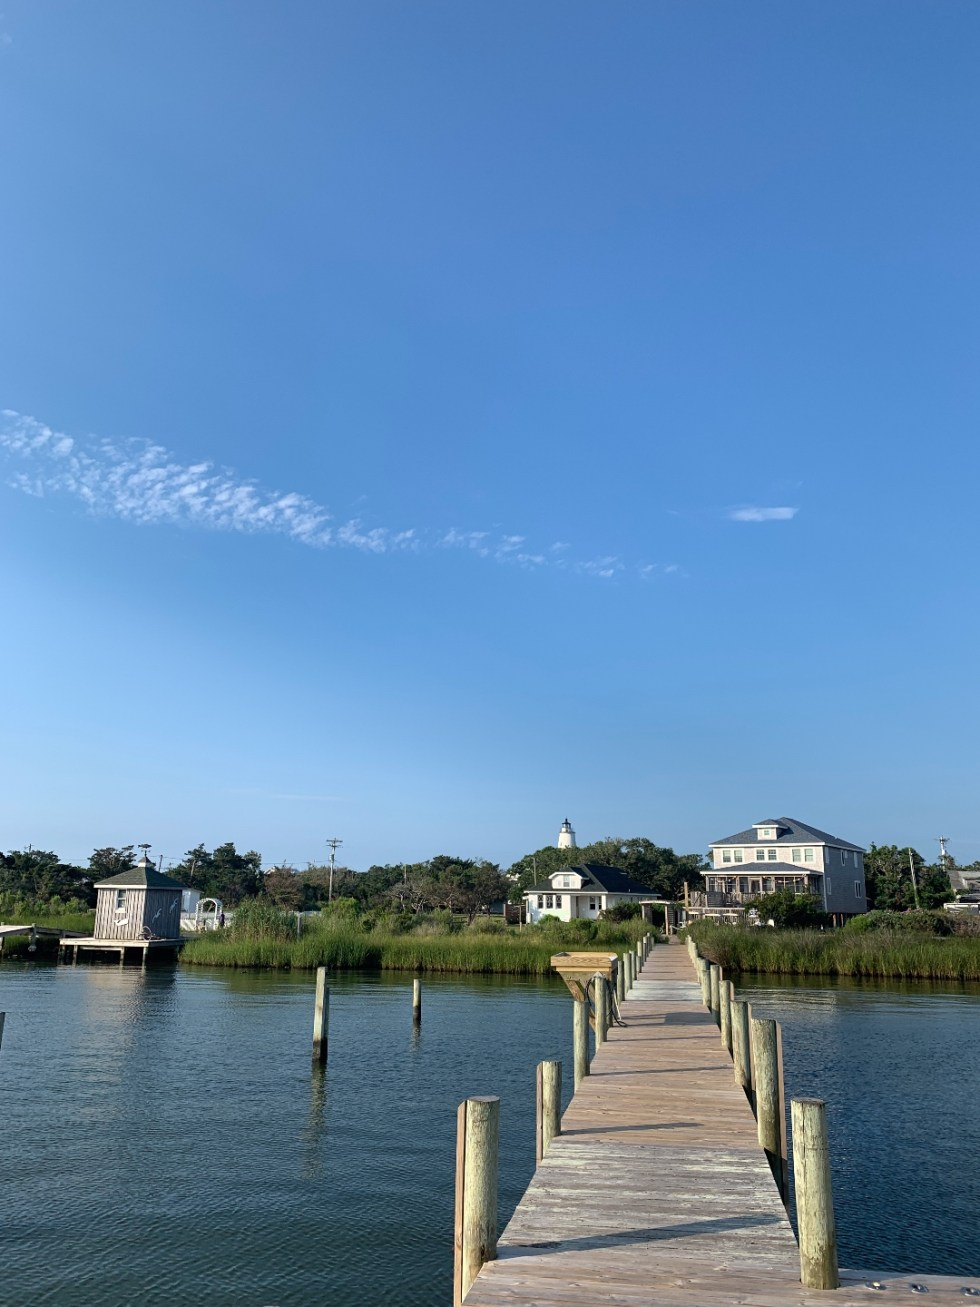 2020, a Year in Review: our Travel Adventures - I'm Fixin' To - @imfixintoblog |Year in Review by popular NC travel blog, I'm Fixin' To: image of a pier leading to some white buildings in Ocracoke.